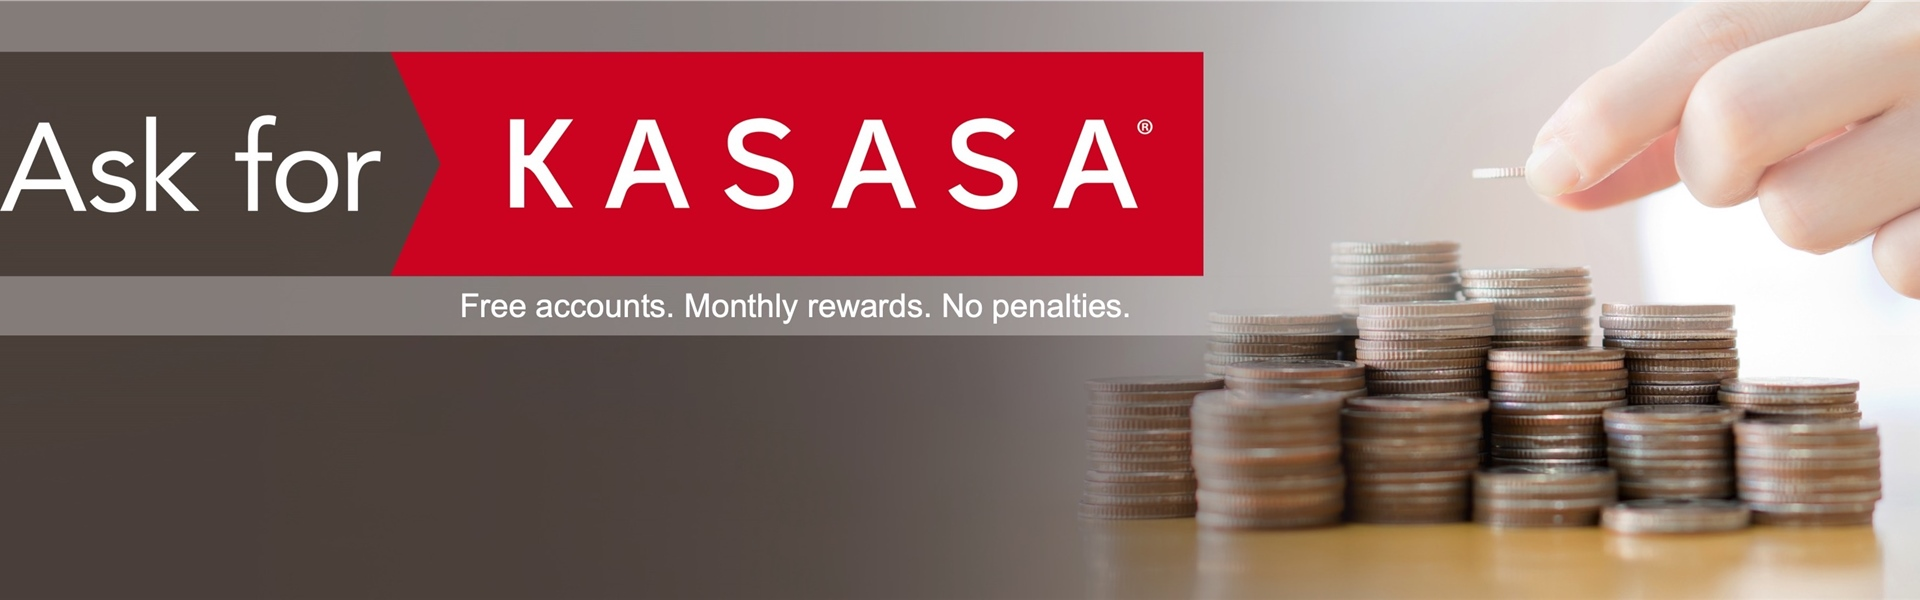 Ask for KASASA Free accounts Monthly rewards No penalties